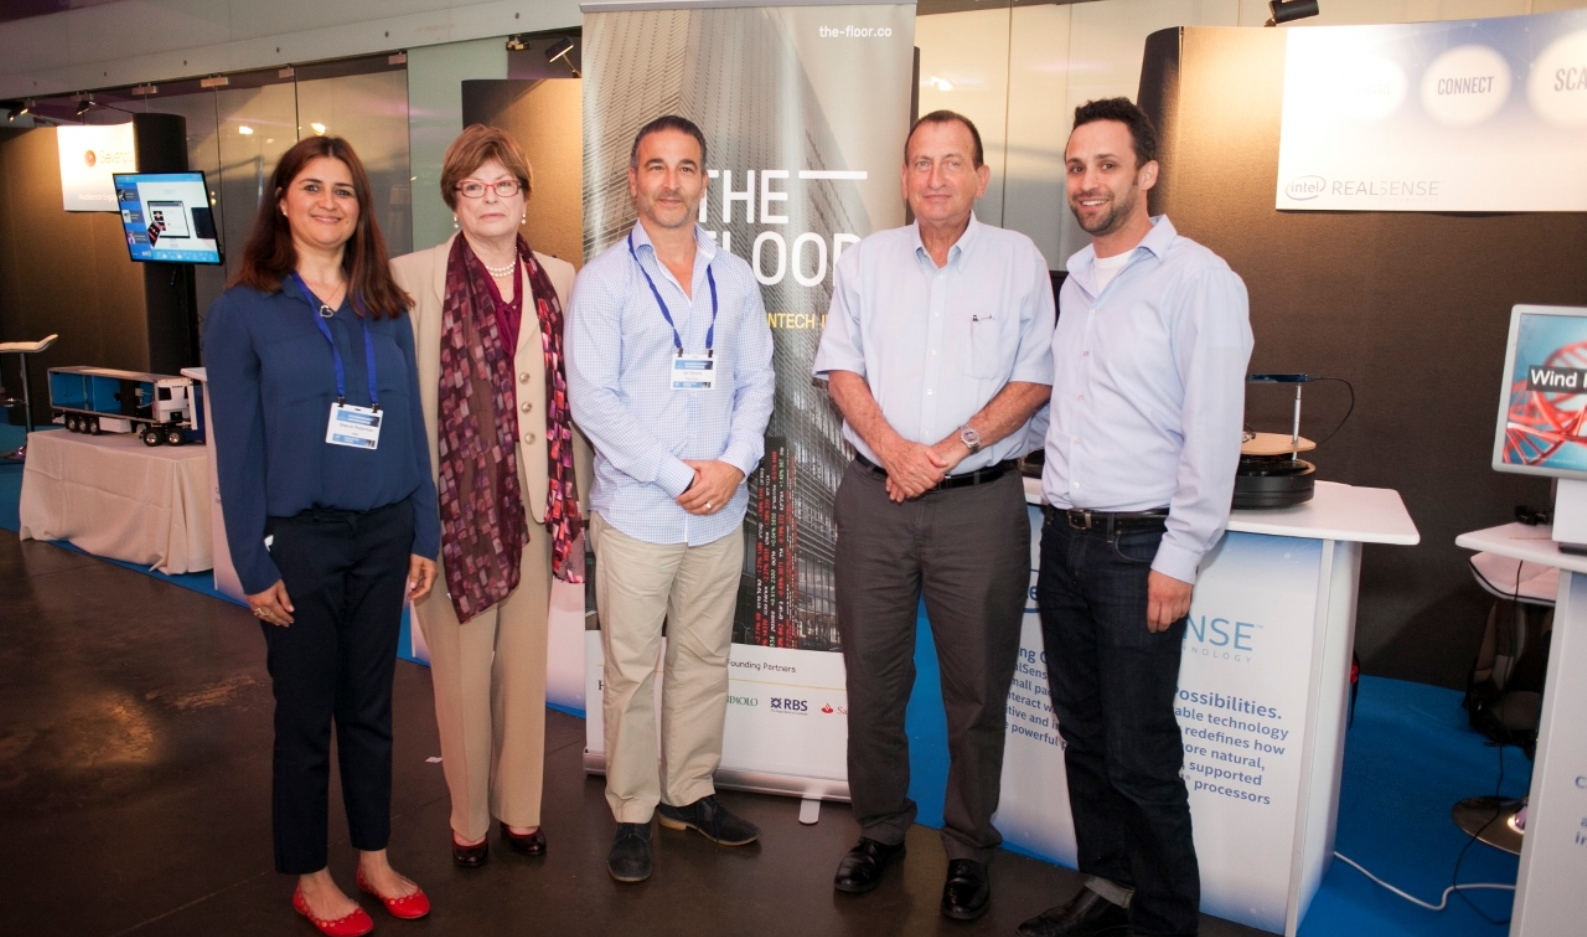 From left, Sharon Futterman, director of business development for IoT Intel Israel; Maxine Fassberg, head of Intel Israel; Gil Devora, director of The Floor; Tel Aviv Mayor Ron Huldai; and Ramon Roy, director of Intel's IoT startup accelerator at The Floor. Photo by Roy Pernik